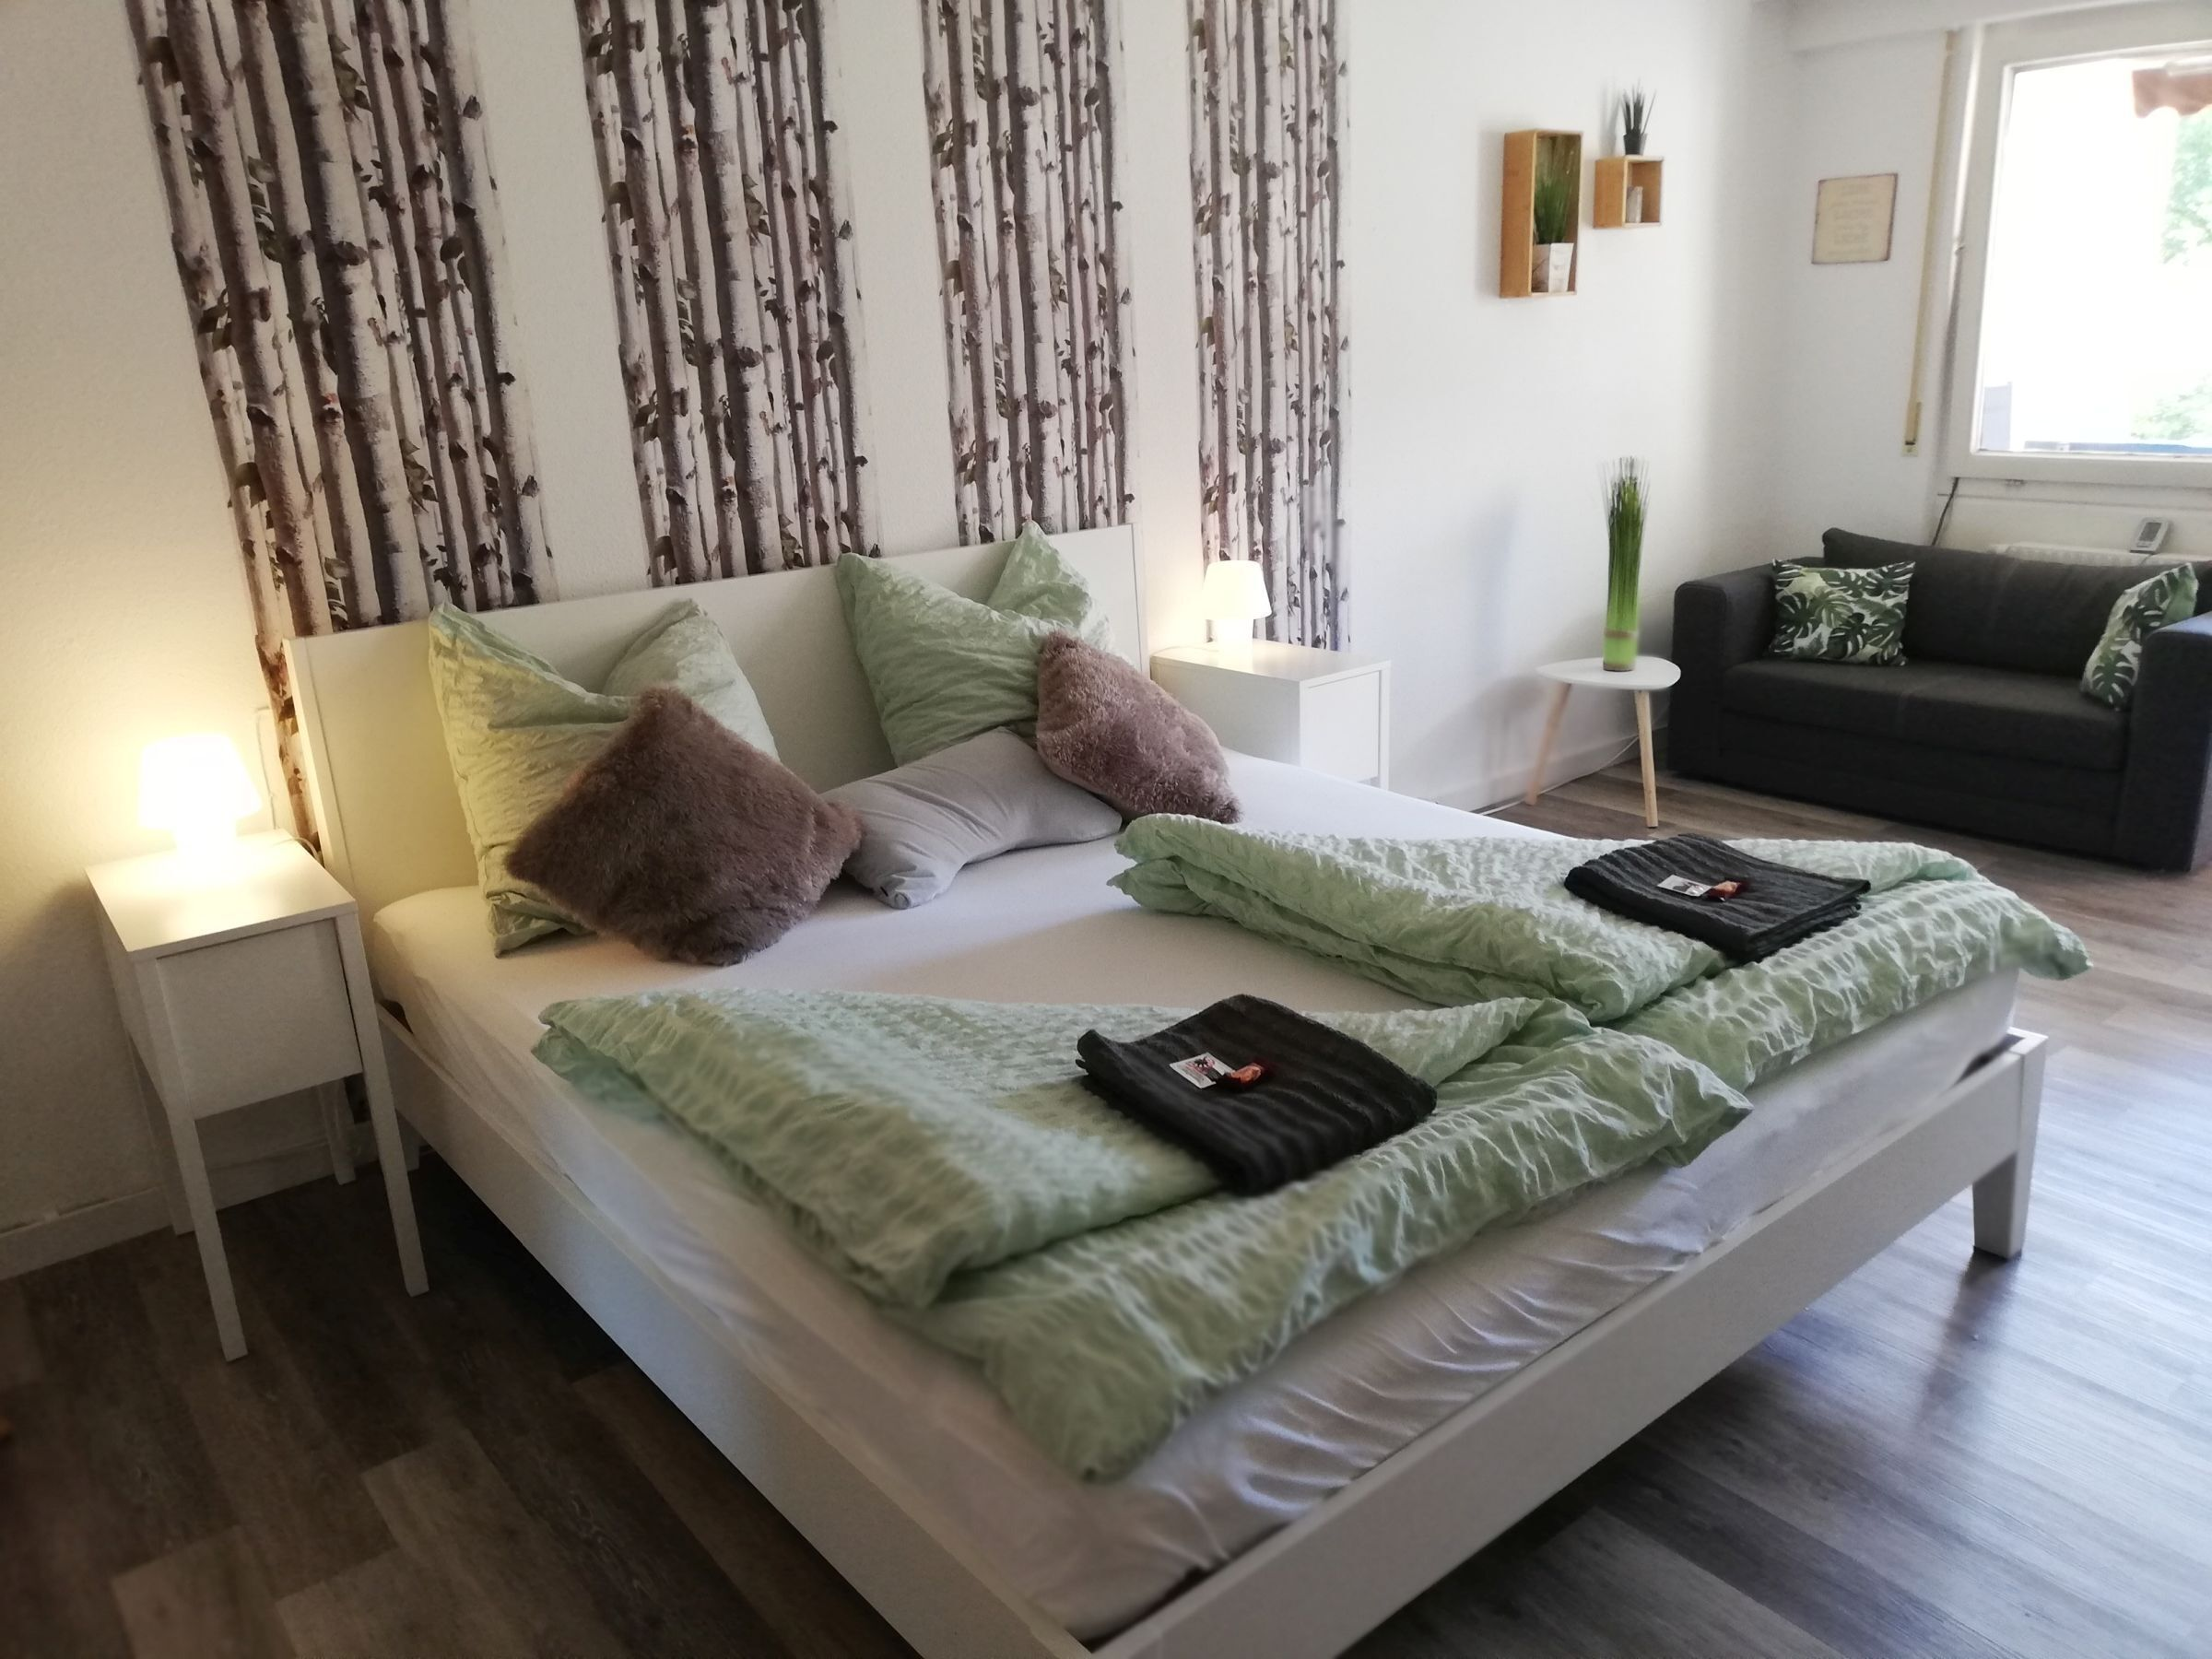 Lived In Appartement 32qm 1 Wohn Schlafzimmer Max 3 Personen 2021 Room Prices Deals Reviews Expedia Com